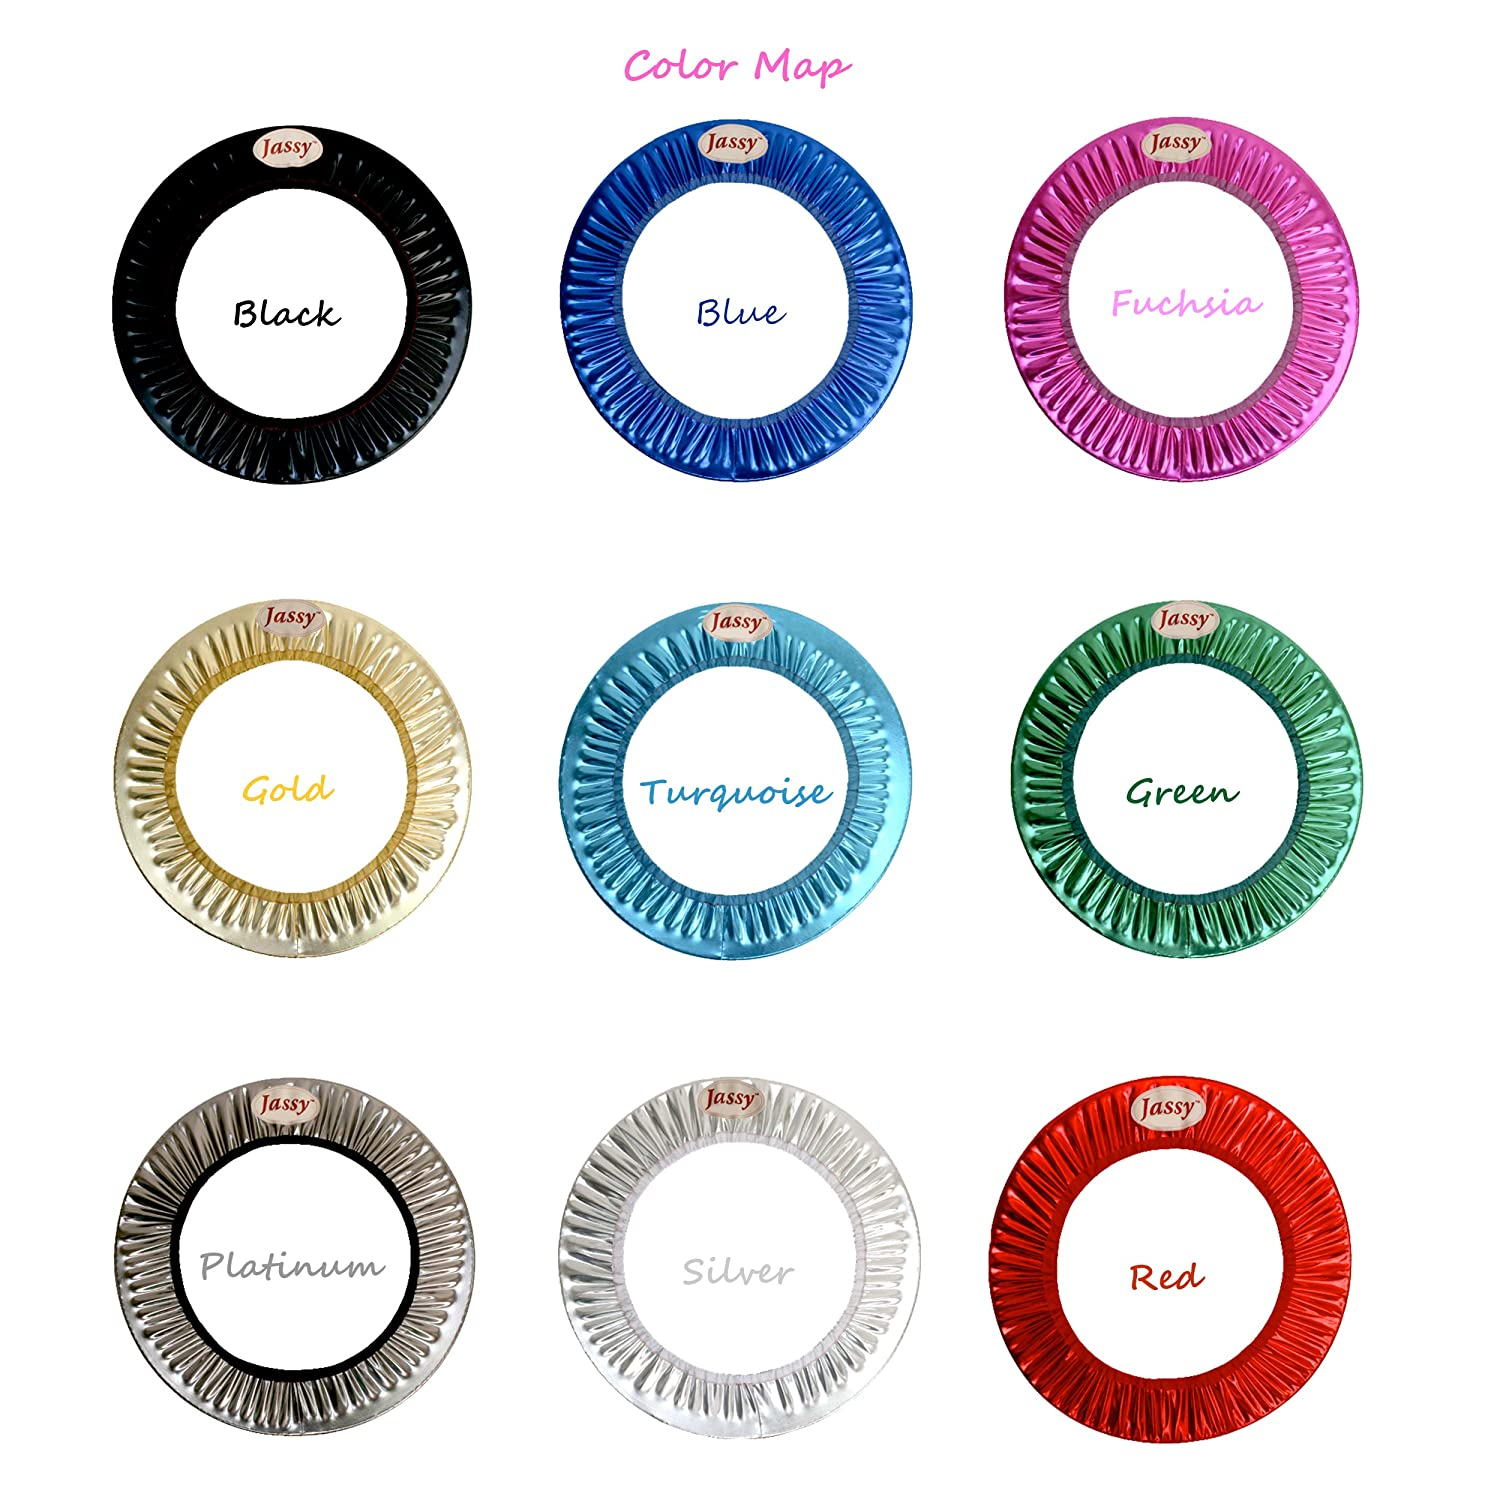 Designed for Rhythmic Gymnastics Unique Metallic Colors Jassy Hoop Cover Fit Sizes 60-90 cm Hula Hoops